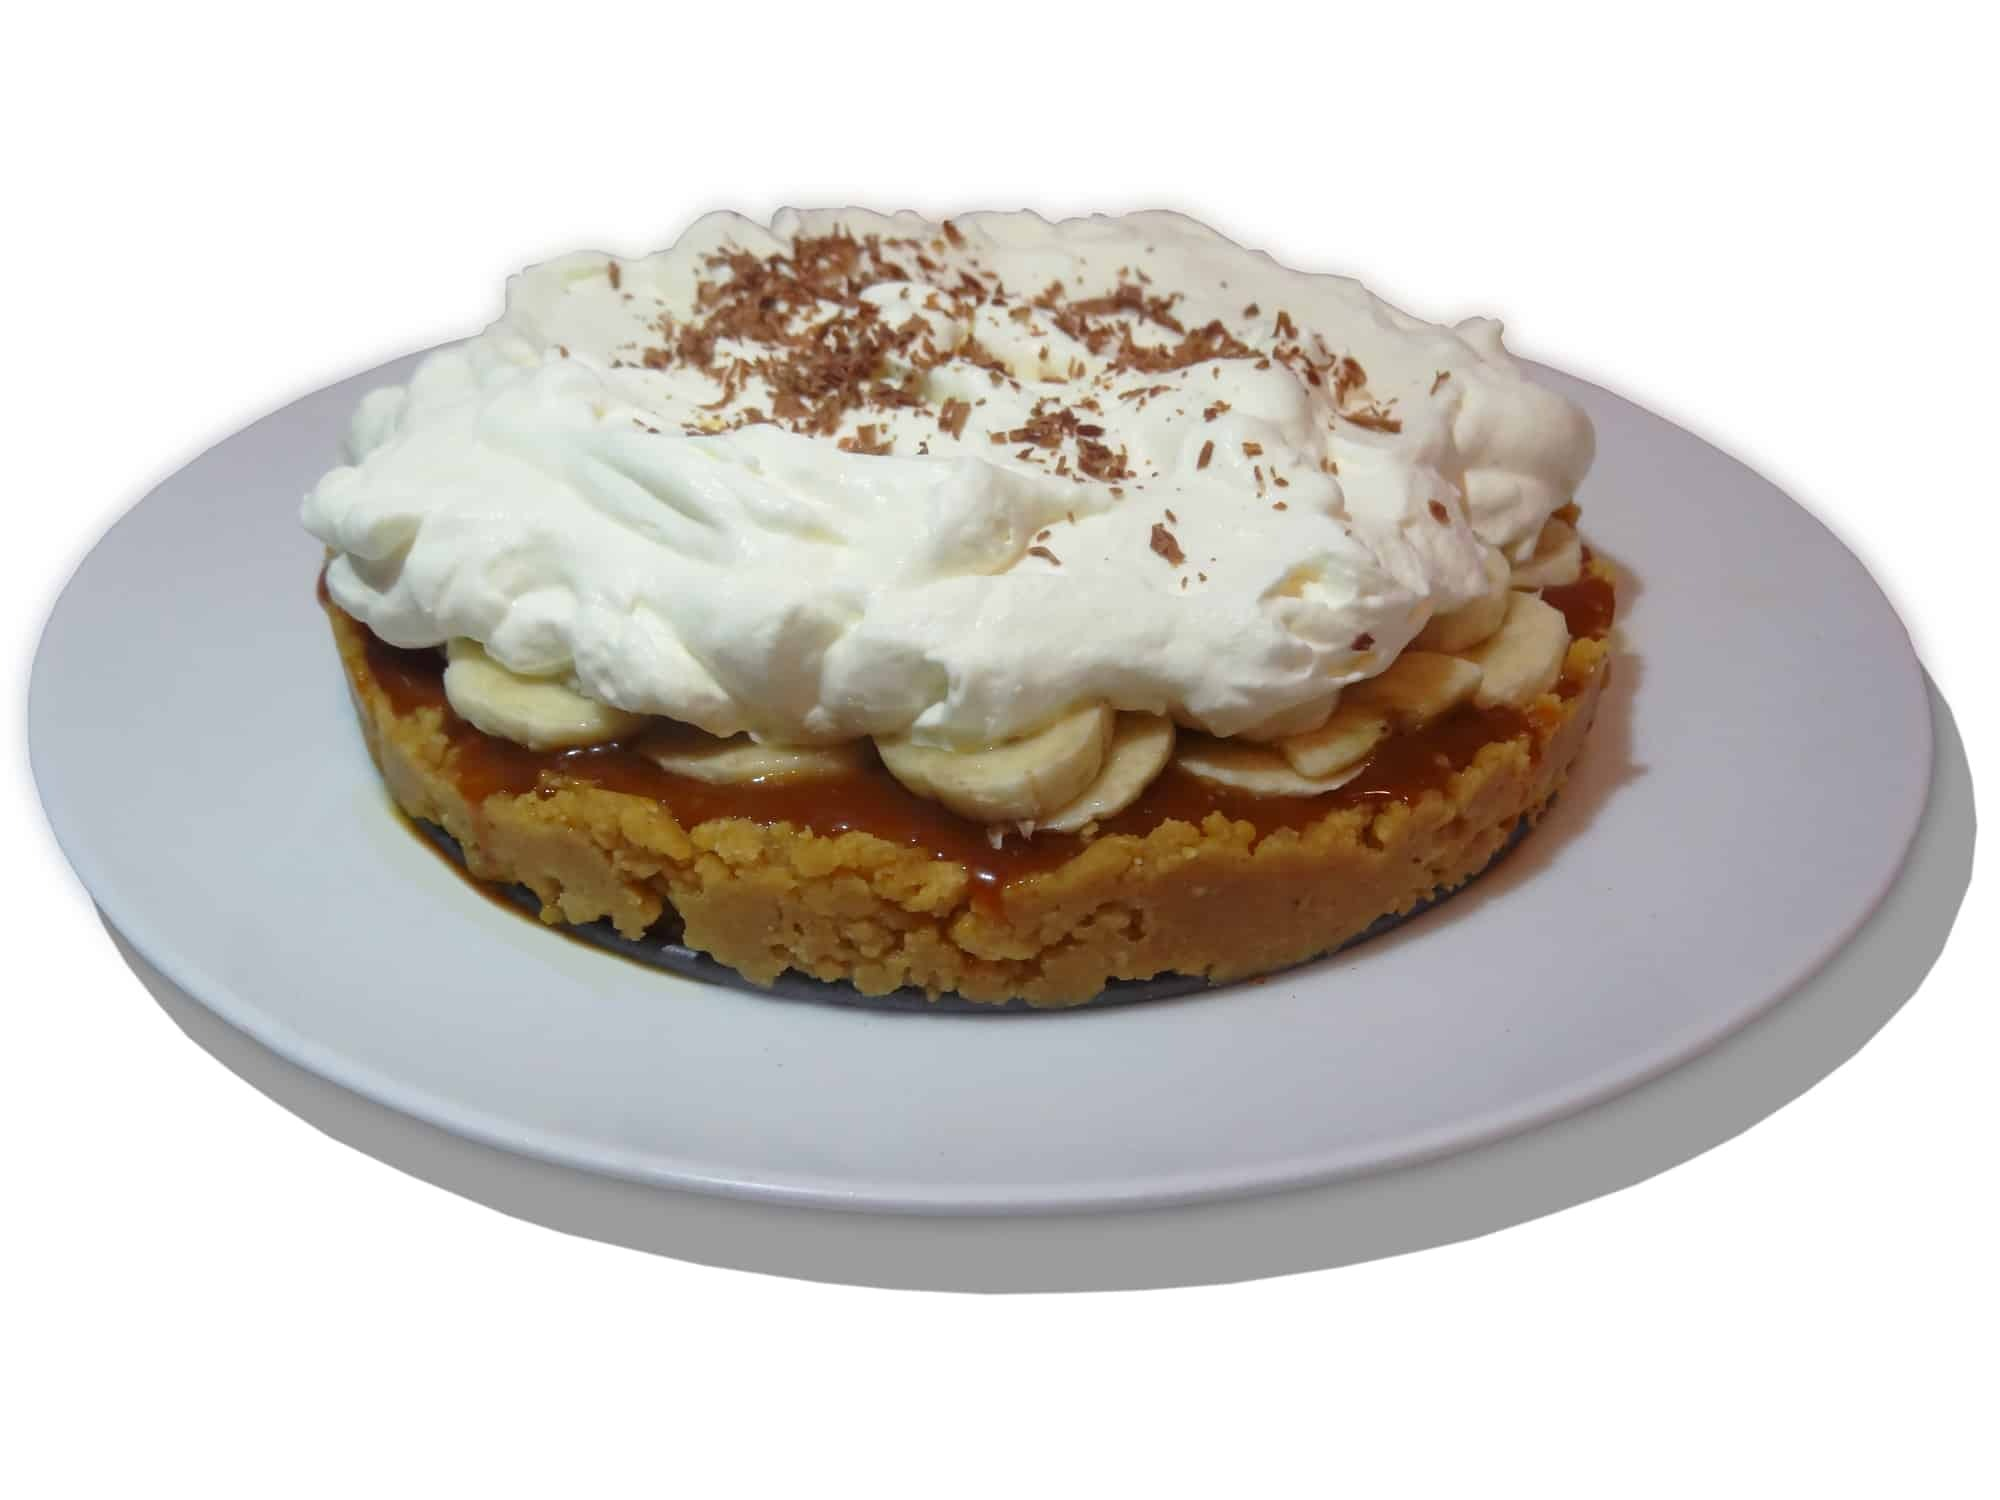 RECIPE: Gluten Free Banoffee Pie with Dairy Free Coconut Caramel